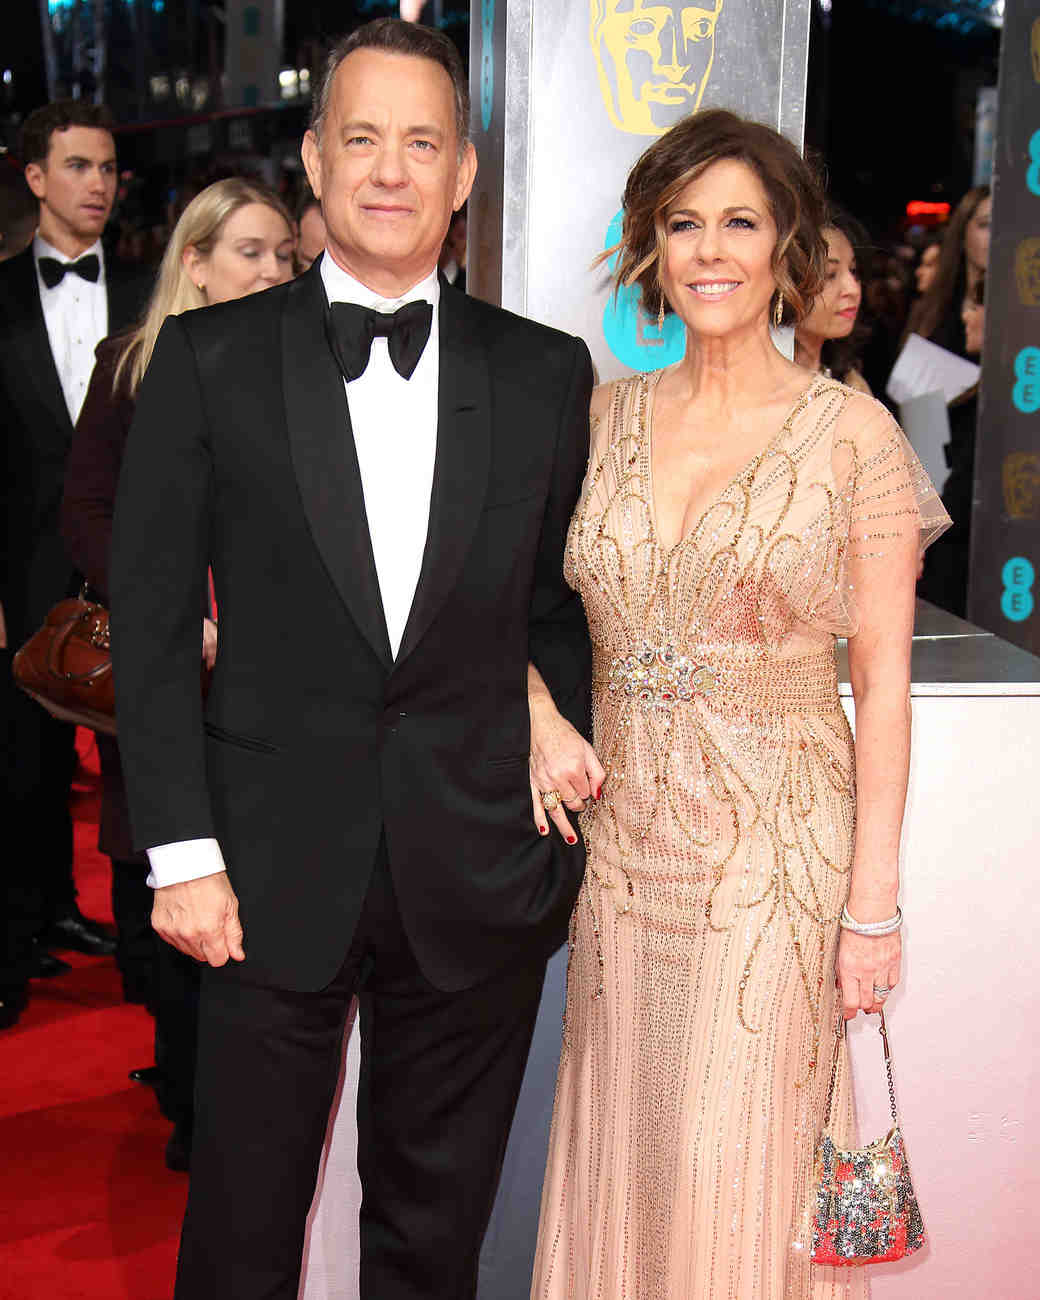 celebrity-marriage-advice-tom-hanks-rita-wilson-1115.jpg